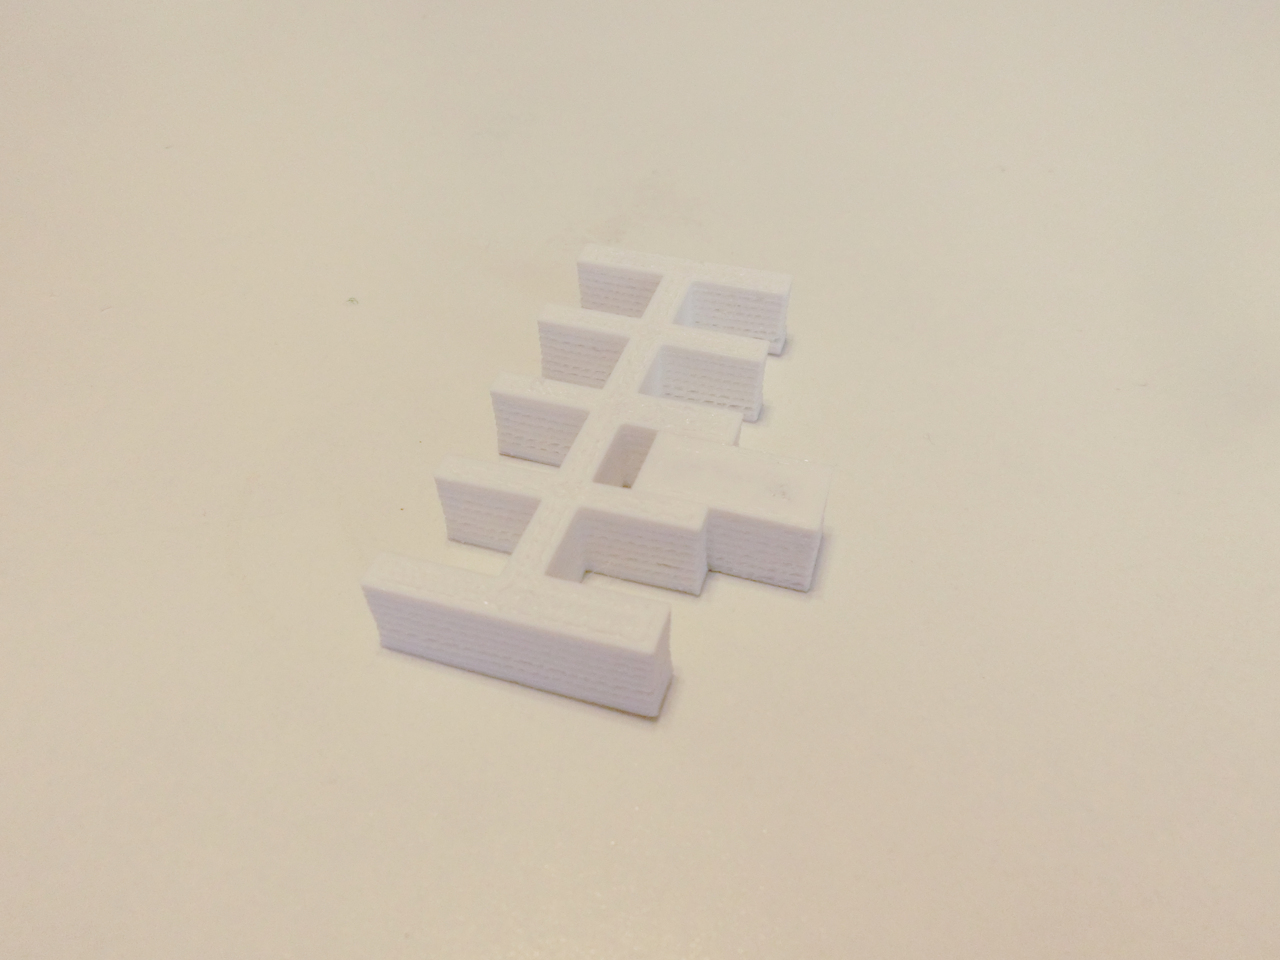 3D print of a form with several notches and another form to test the notches